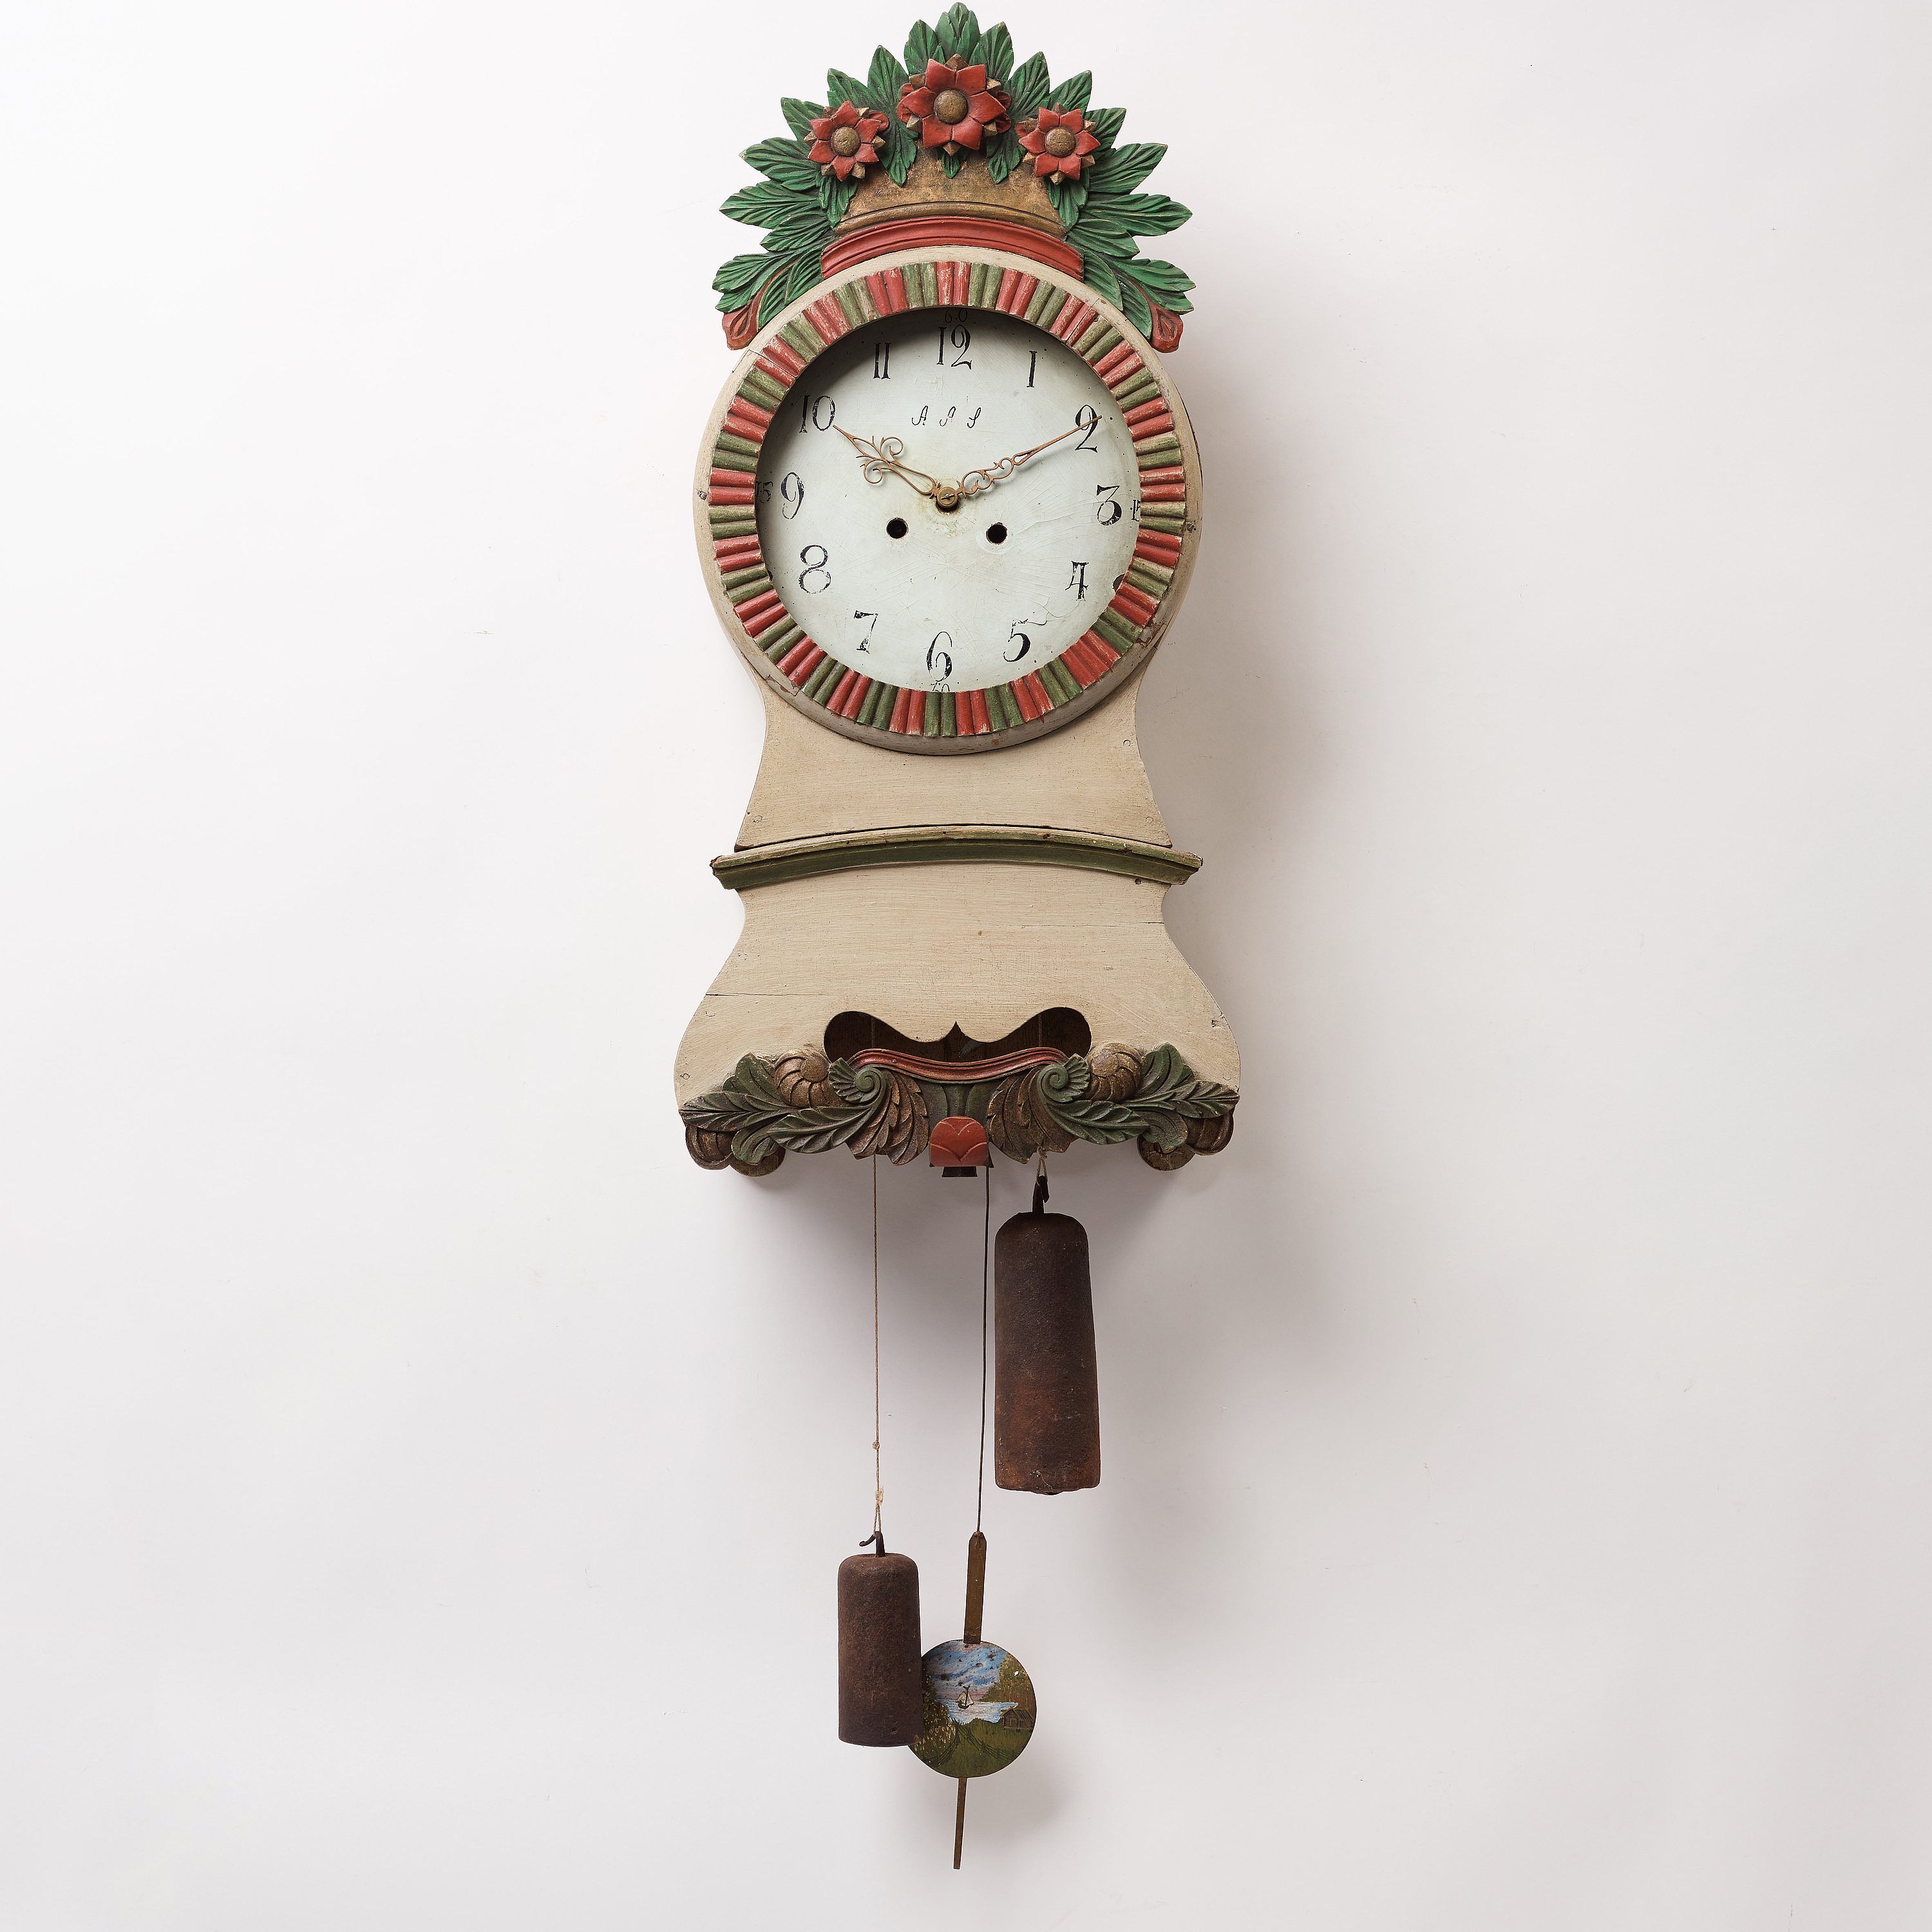 a painted wall pendulum clock from Ångermanland in the first